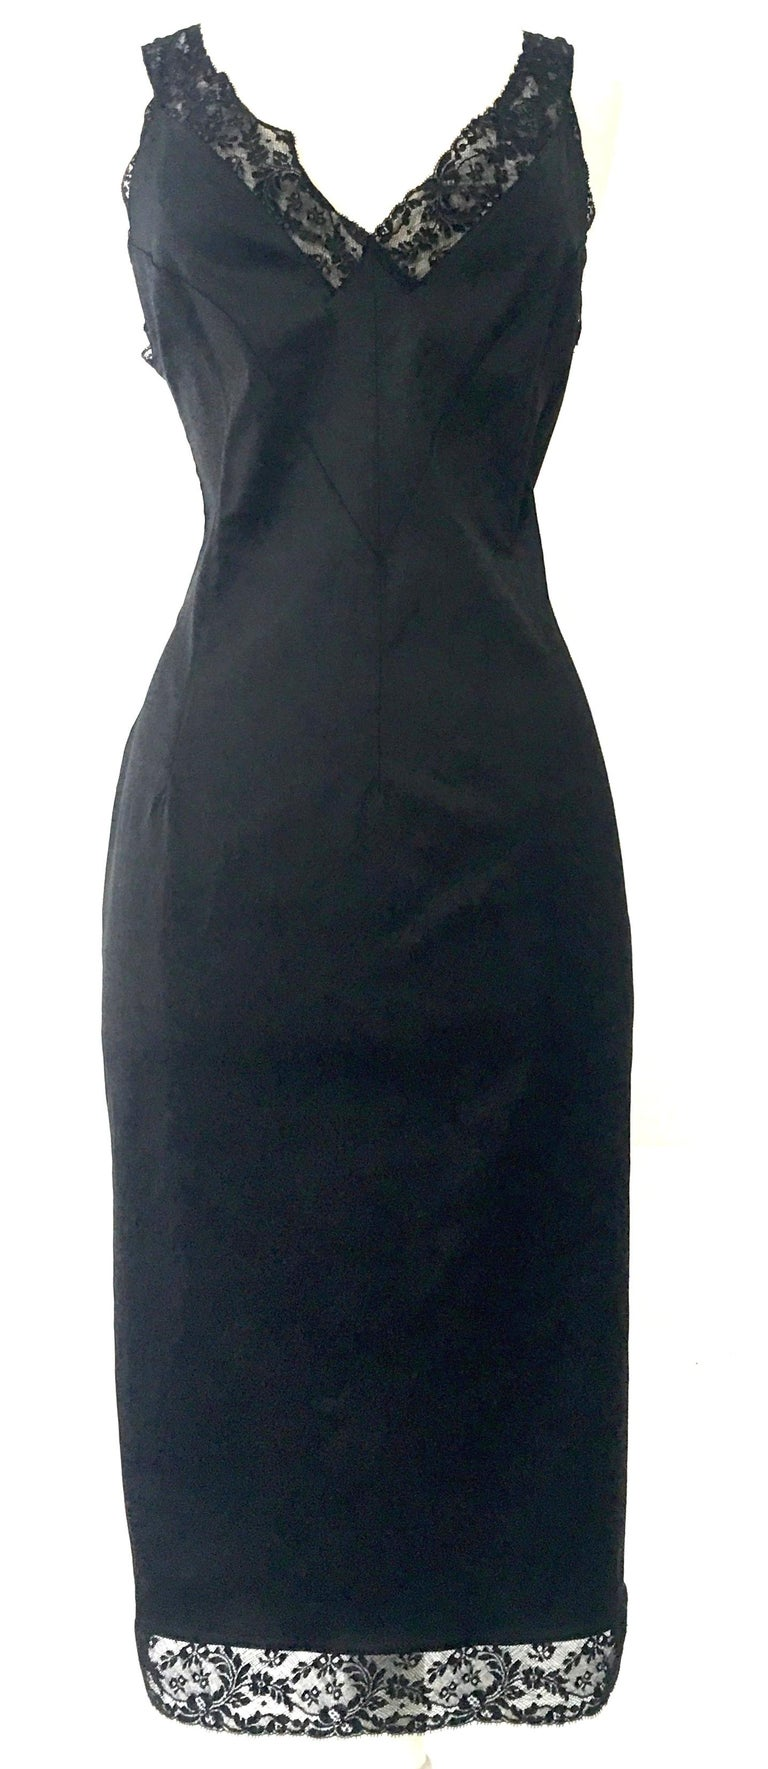 b1a3ec03 Iconic Dolce & Gabbana (D&G) Little Black Dress. This fitted stretch black